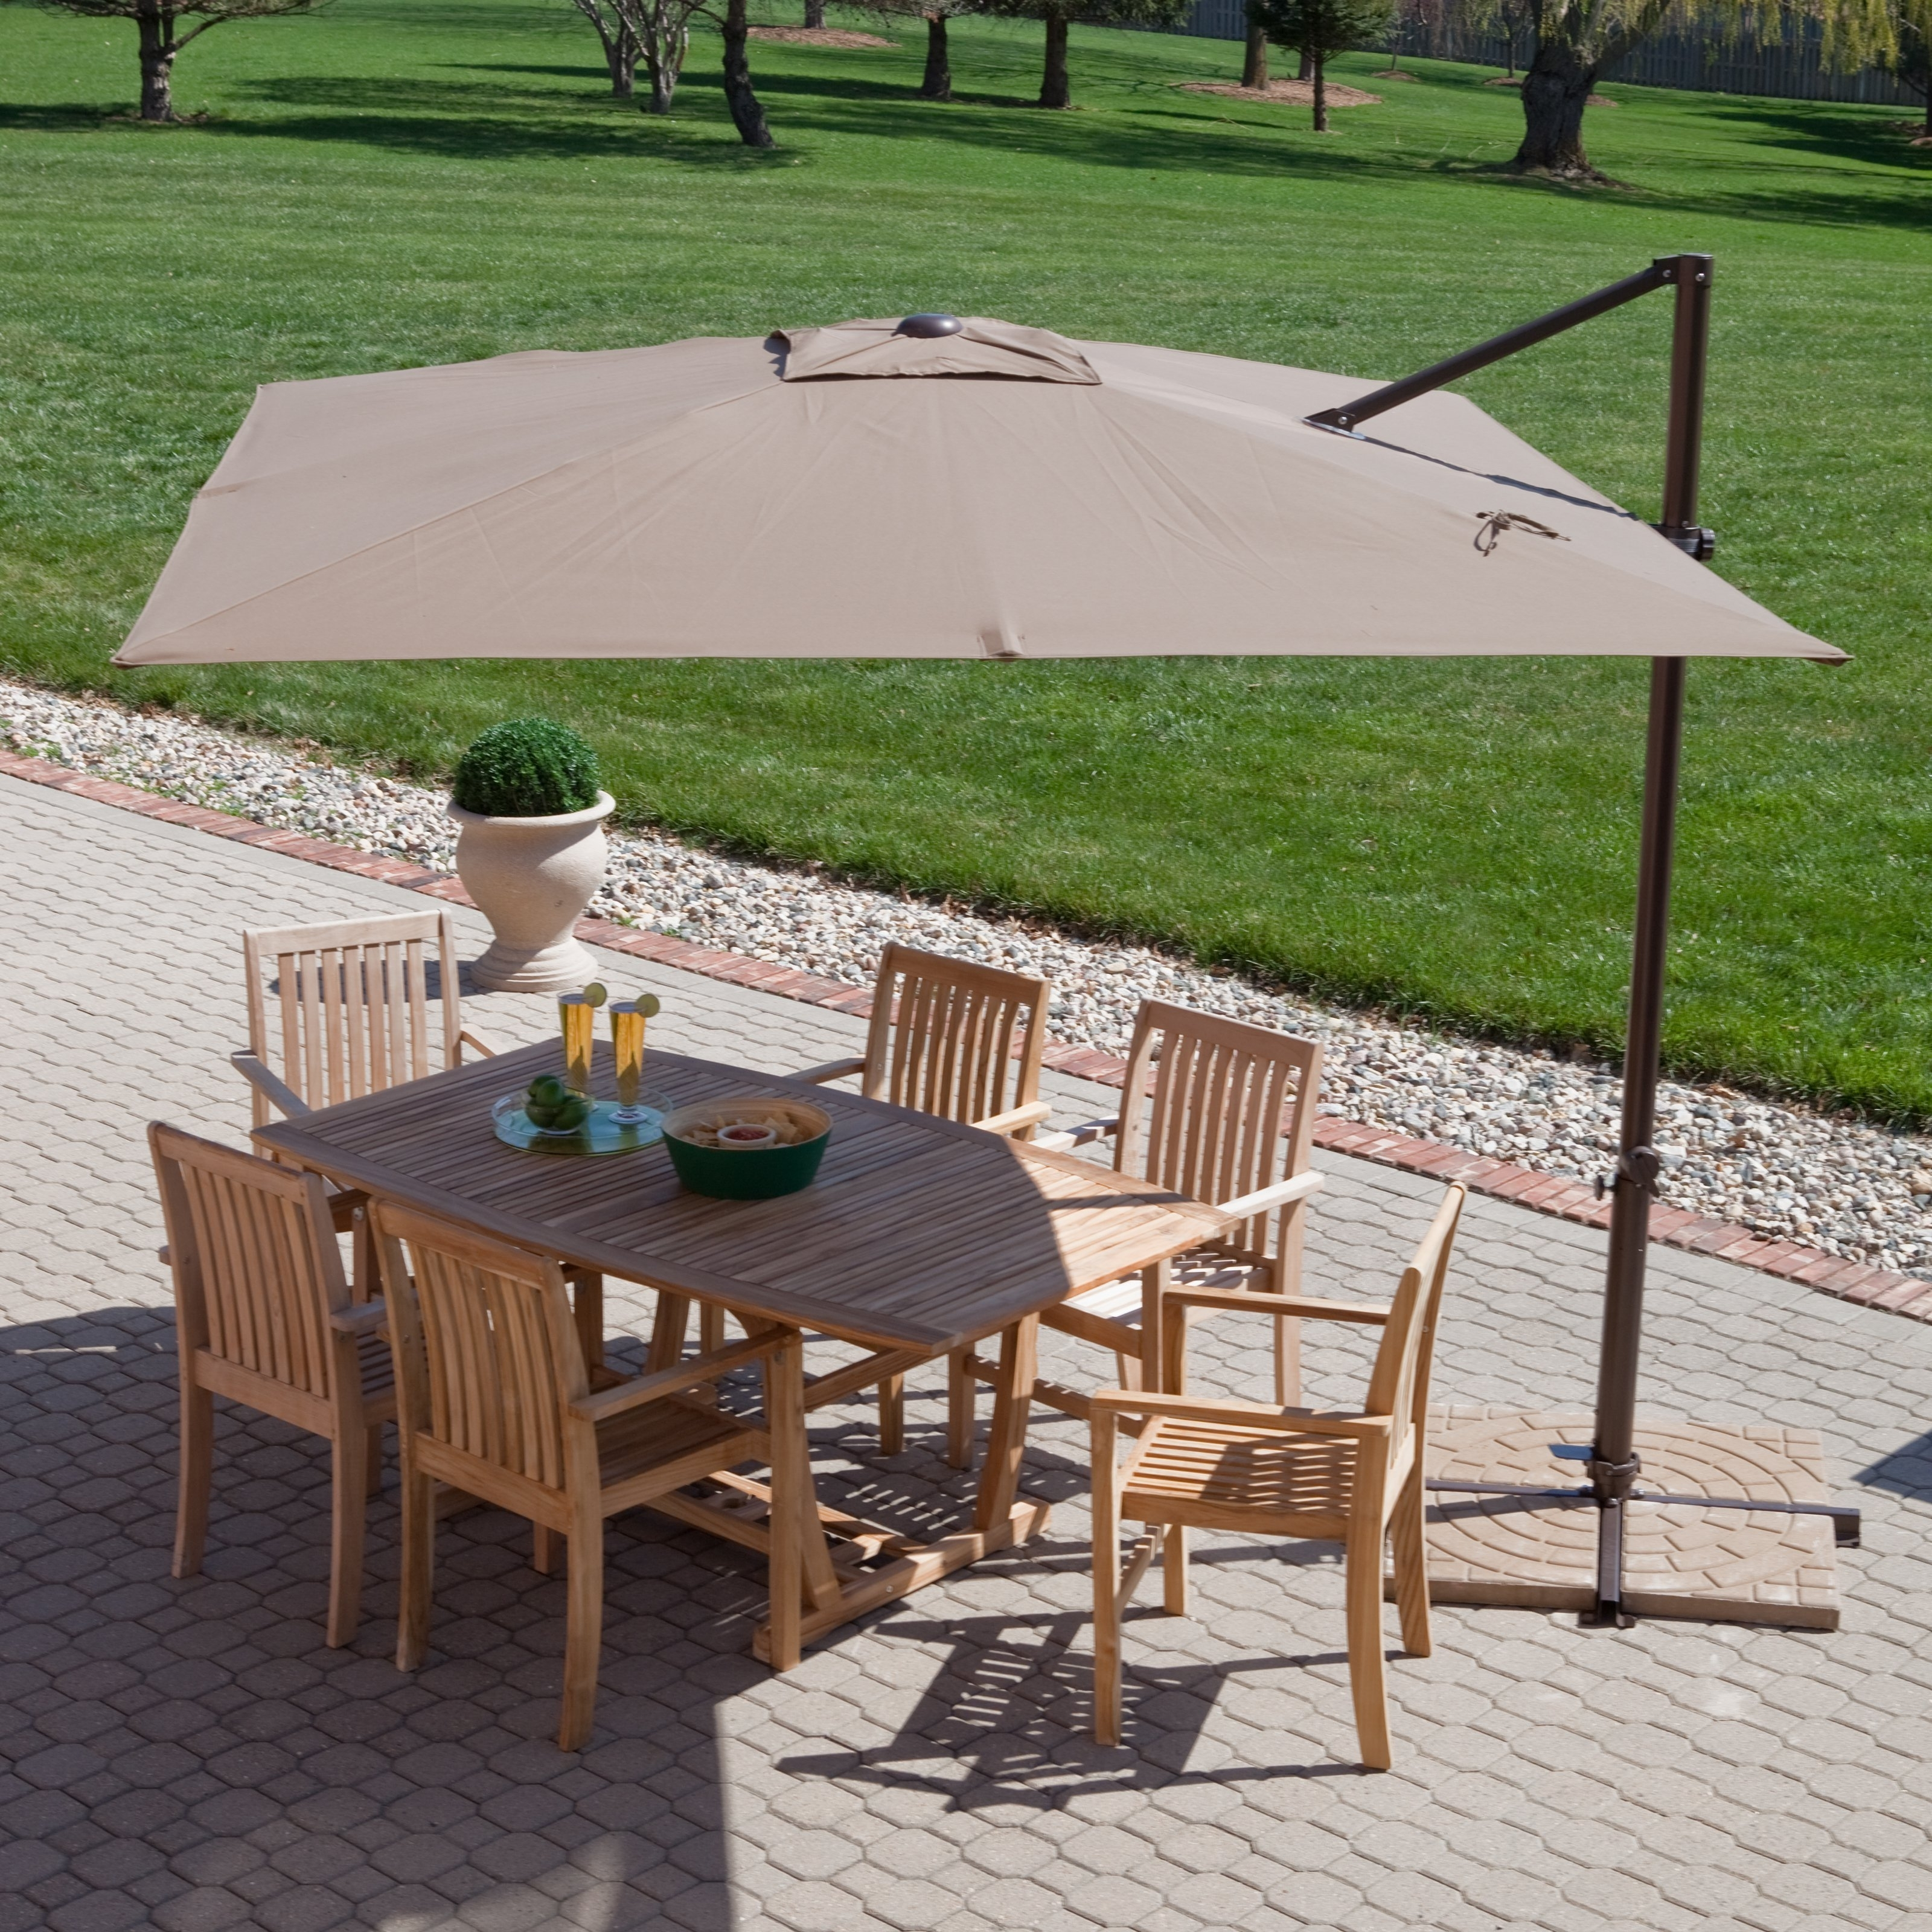 Square Mocha Fabric Patio Umbrella With Black Metal Base Over Brown For Most Popular Rectangle Patio Umbrellas (View 19 of 20)